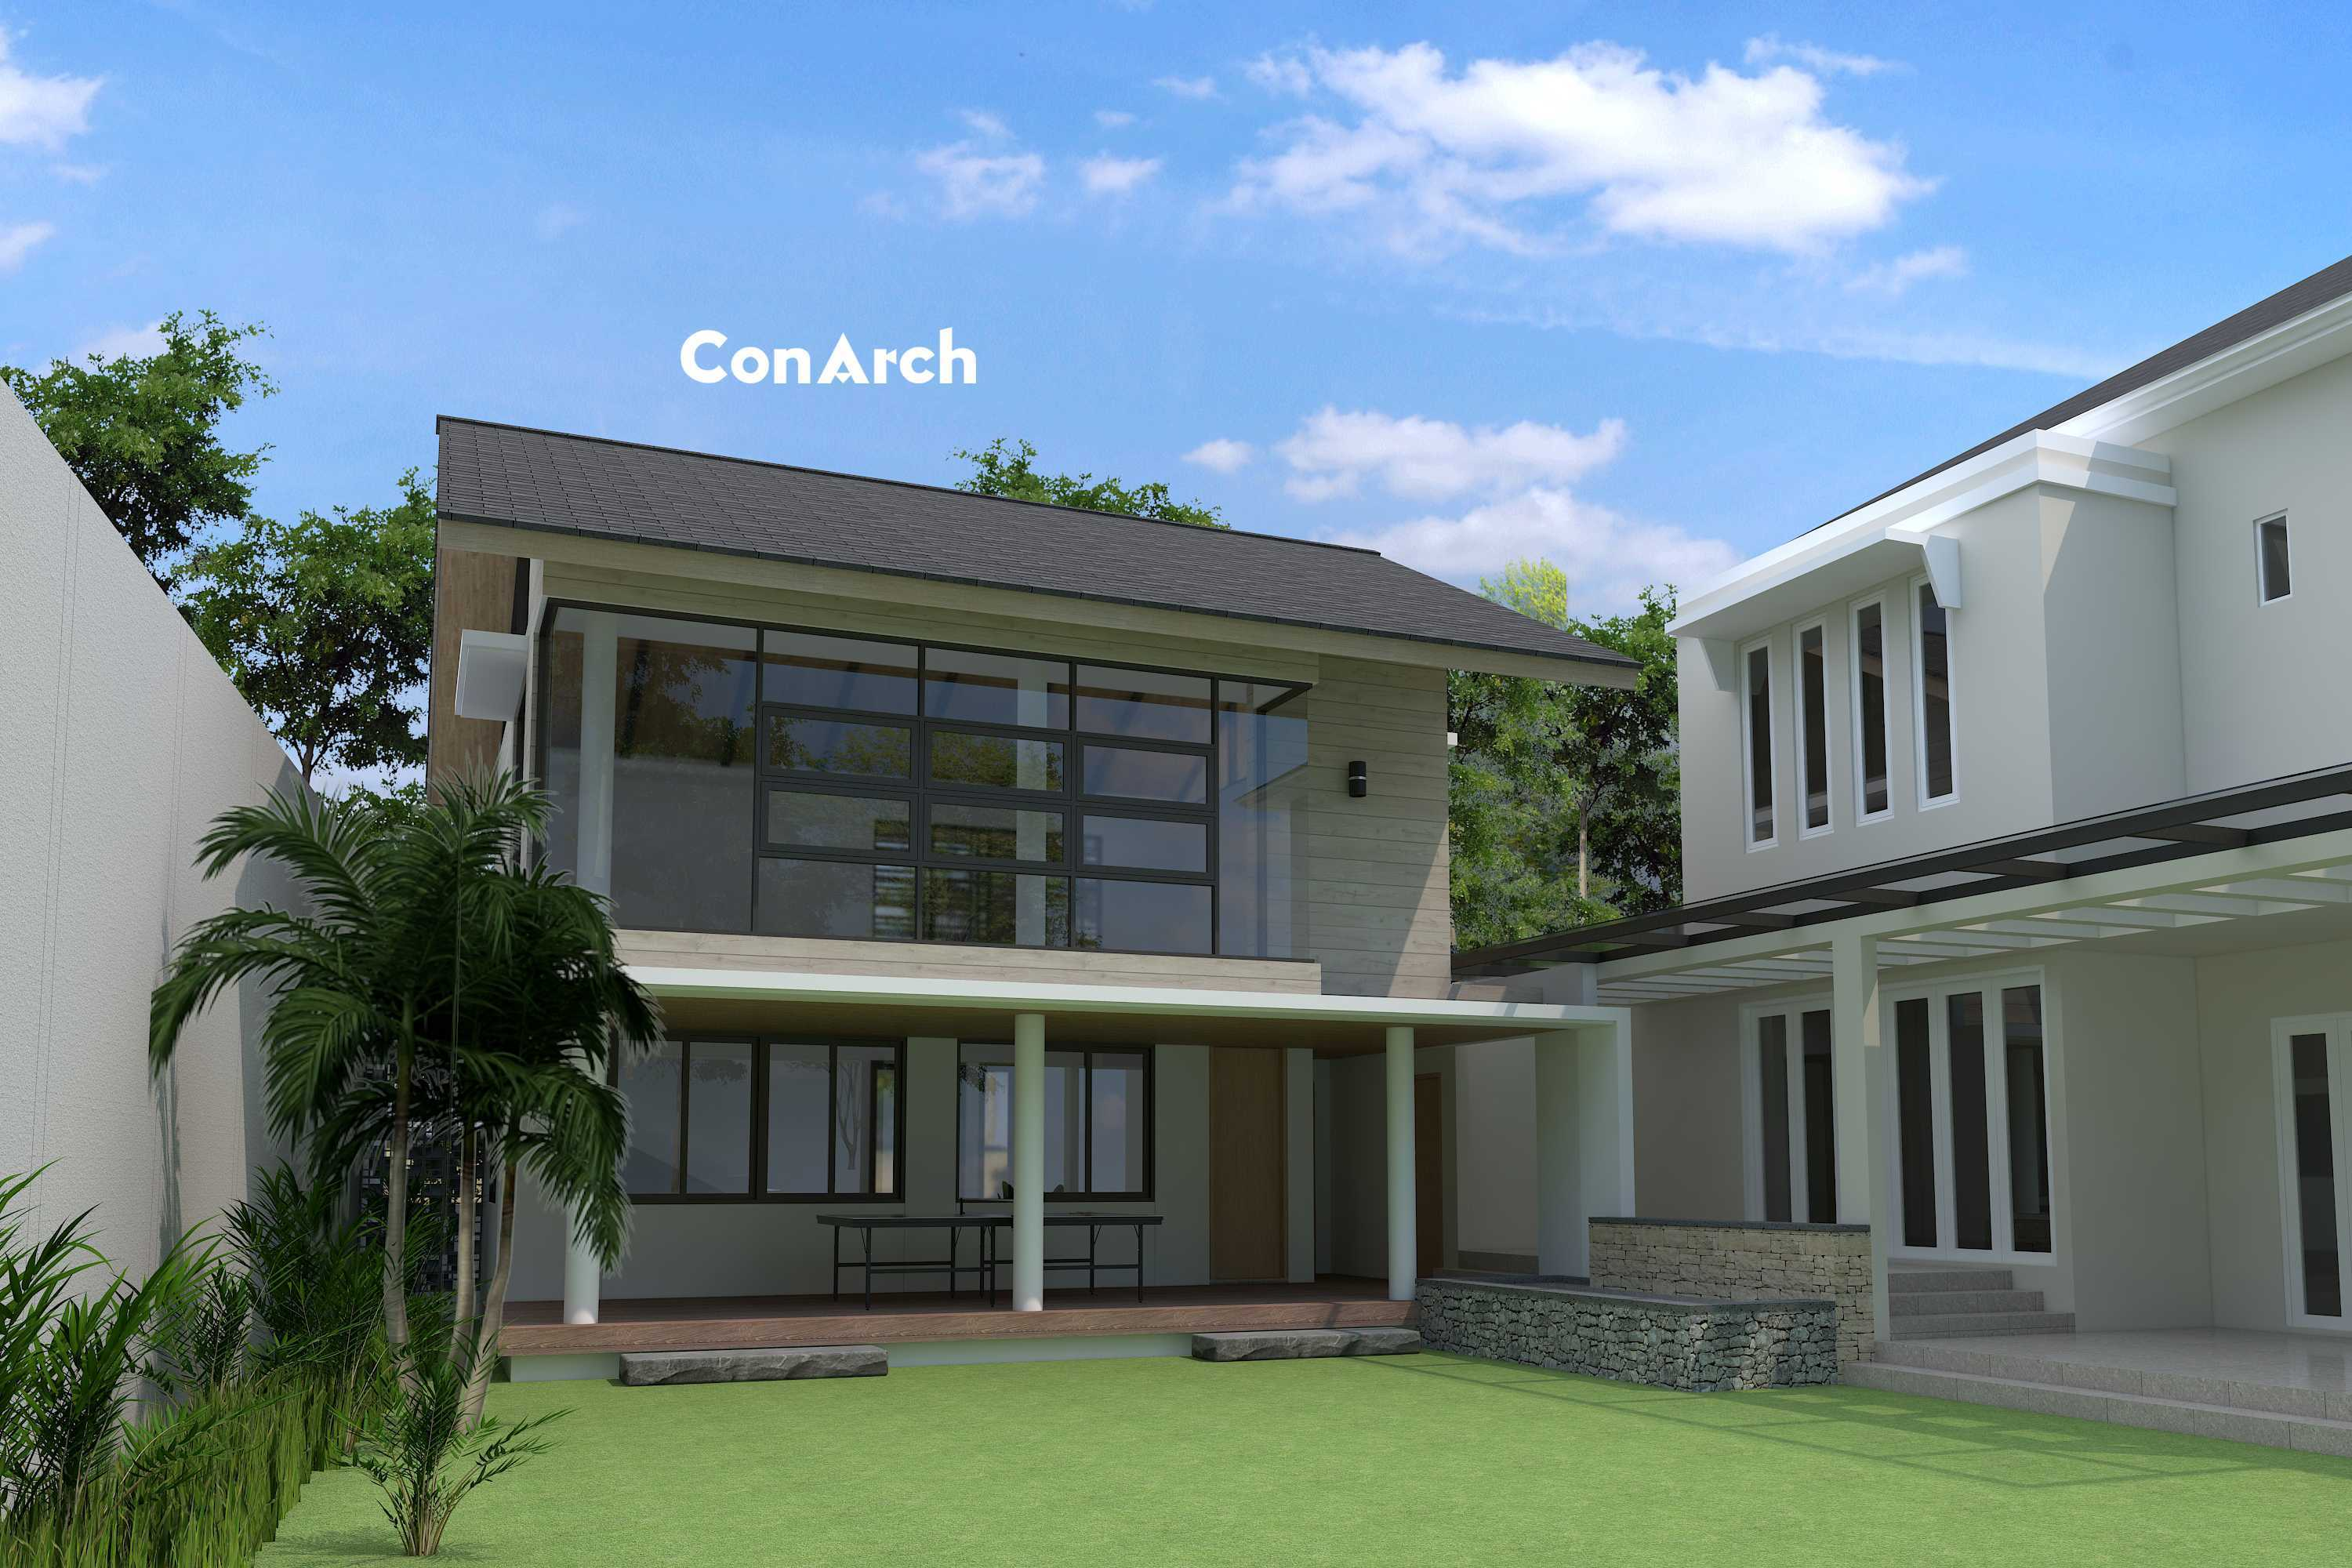 Conarch Studio A Simple House Office Yogyakarta, Kota Yogyakarta, Daerah Istimewa Yogyakarta, Indonesia Yogyakarta, Kota Yogyakarta, Daerah Istimewa Yogyakarta, Indonesia Minimalist House With Working Space   91043